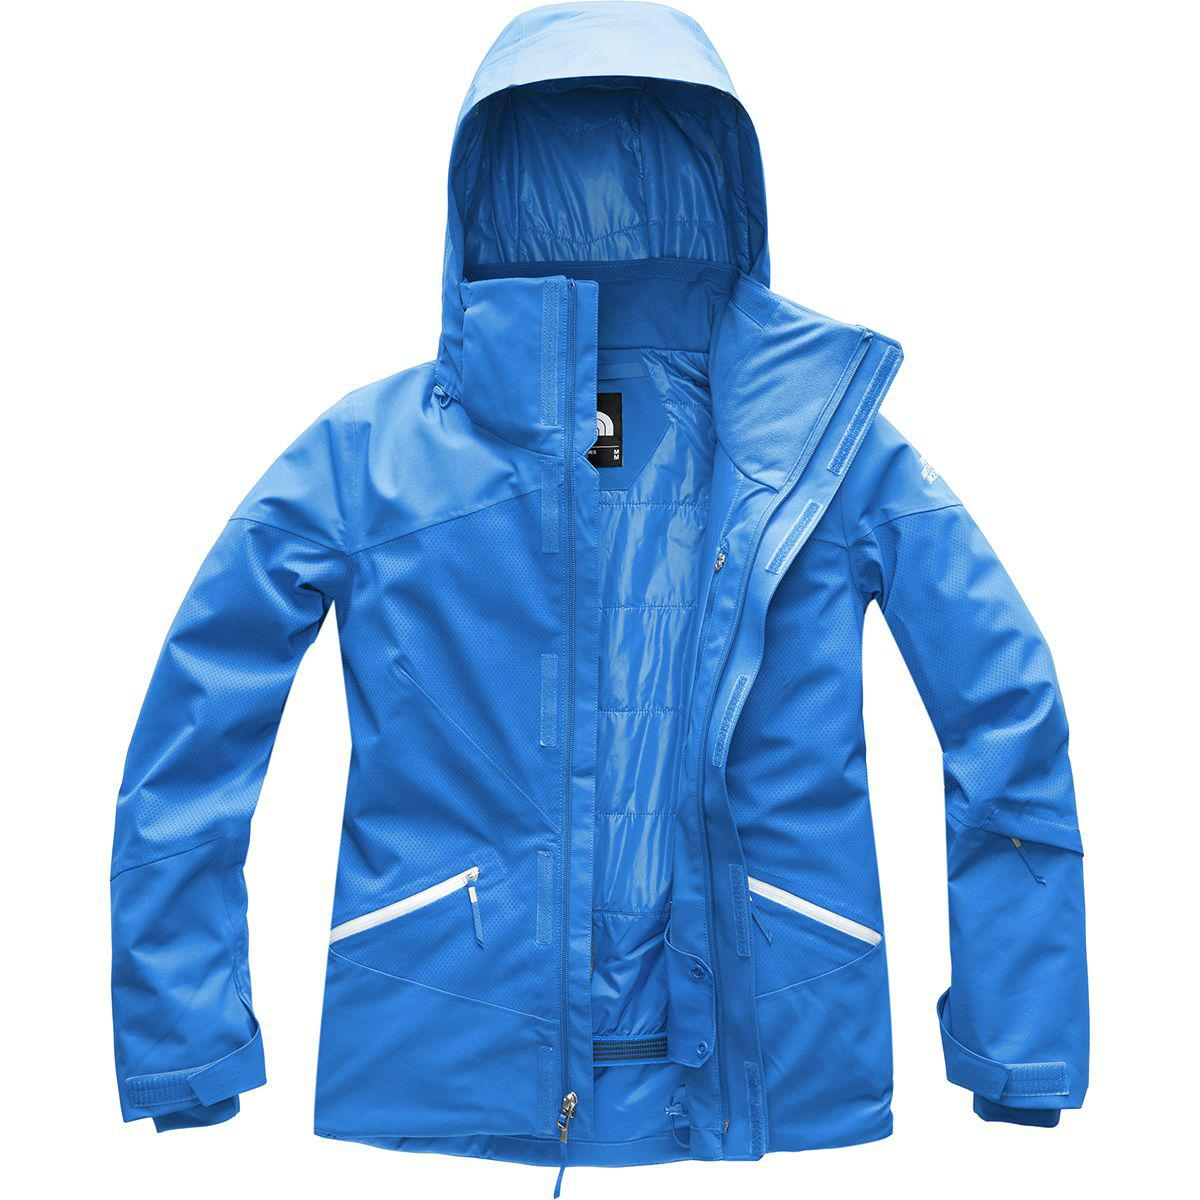 4332b9e5a Lyst - The North Face Lenado Insulated Jacket in Blue